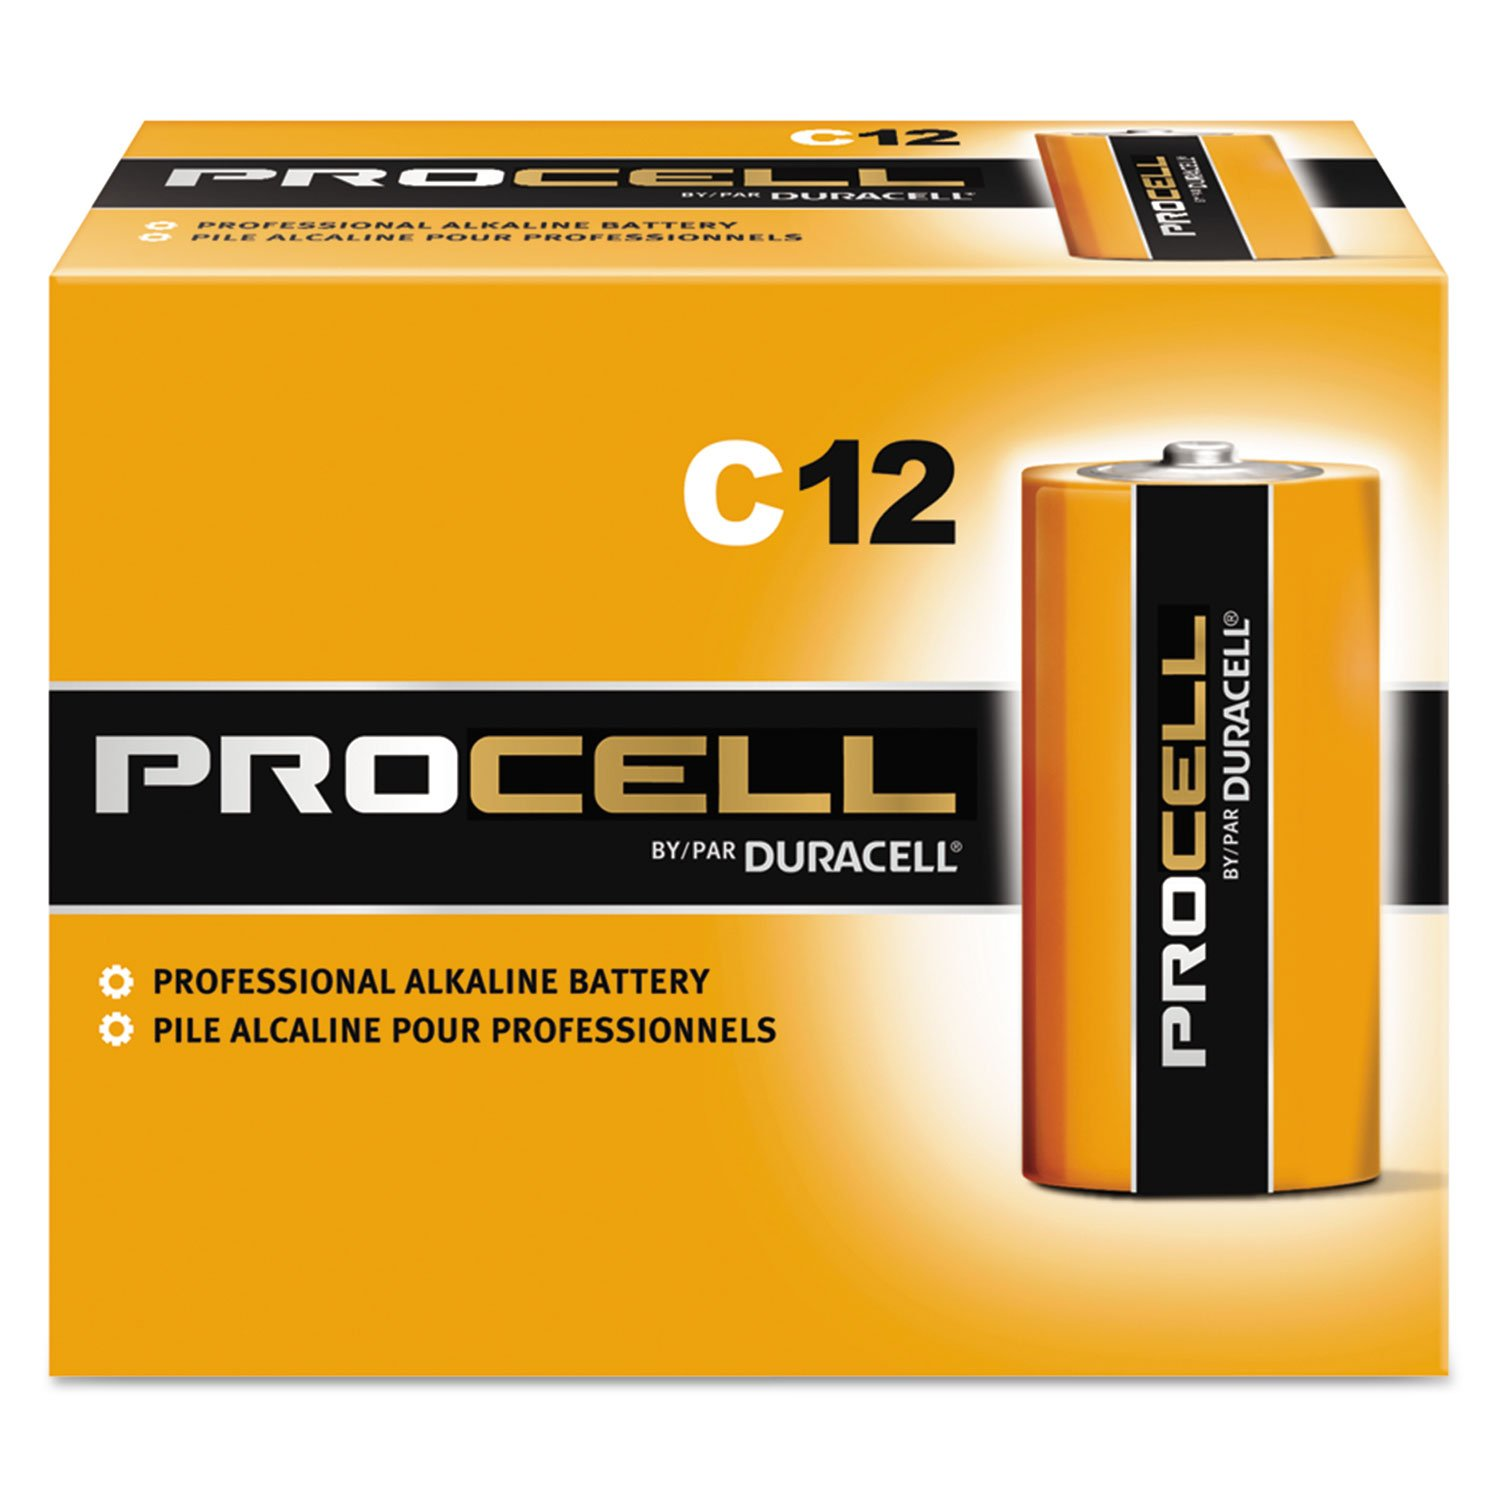 DURACELL C12 PROCELL Professional Alkaline Battery, 48 Count